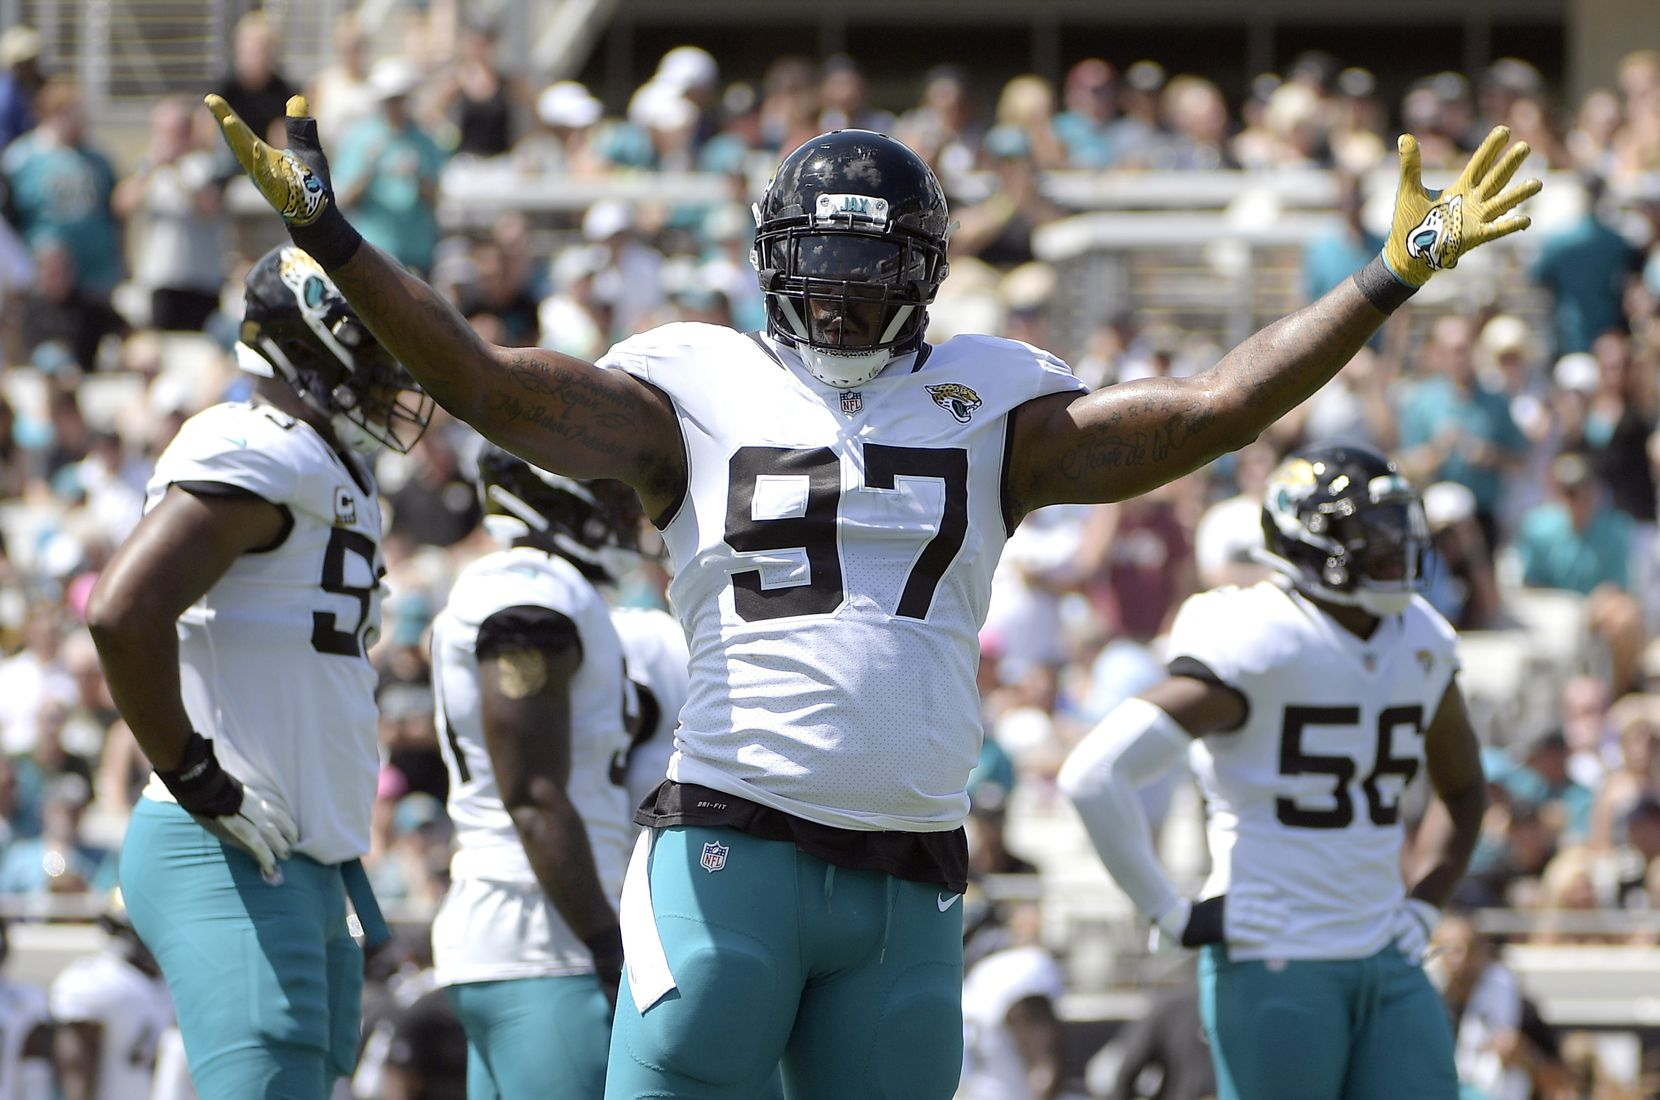 FILE - In this Sept. 23, 2018, file photo, Jacksonville Jaguars defensive tackle Malik Jackson (97) gestures during the first half of an NFL football game against the Tennessee Titans in Jacksonville, Fla. Jackson is no longer a starter and his playing time is dwindling, clear signs his tenure in Jacksonville is nearing an end. (AP Photo/Phelan M. Ebenhack)